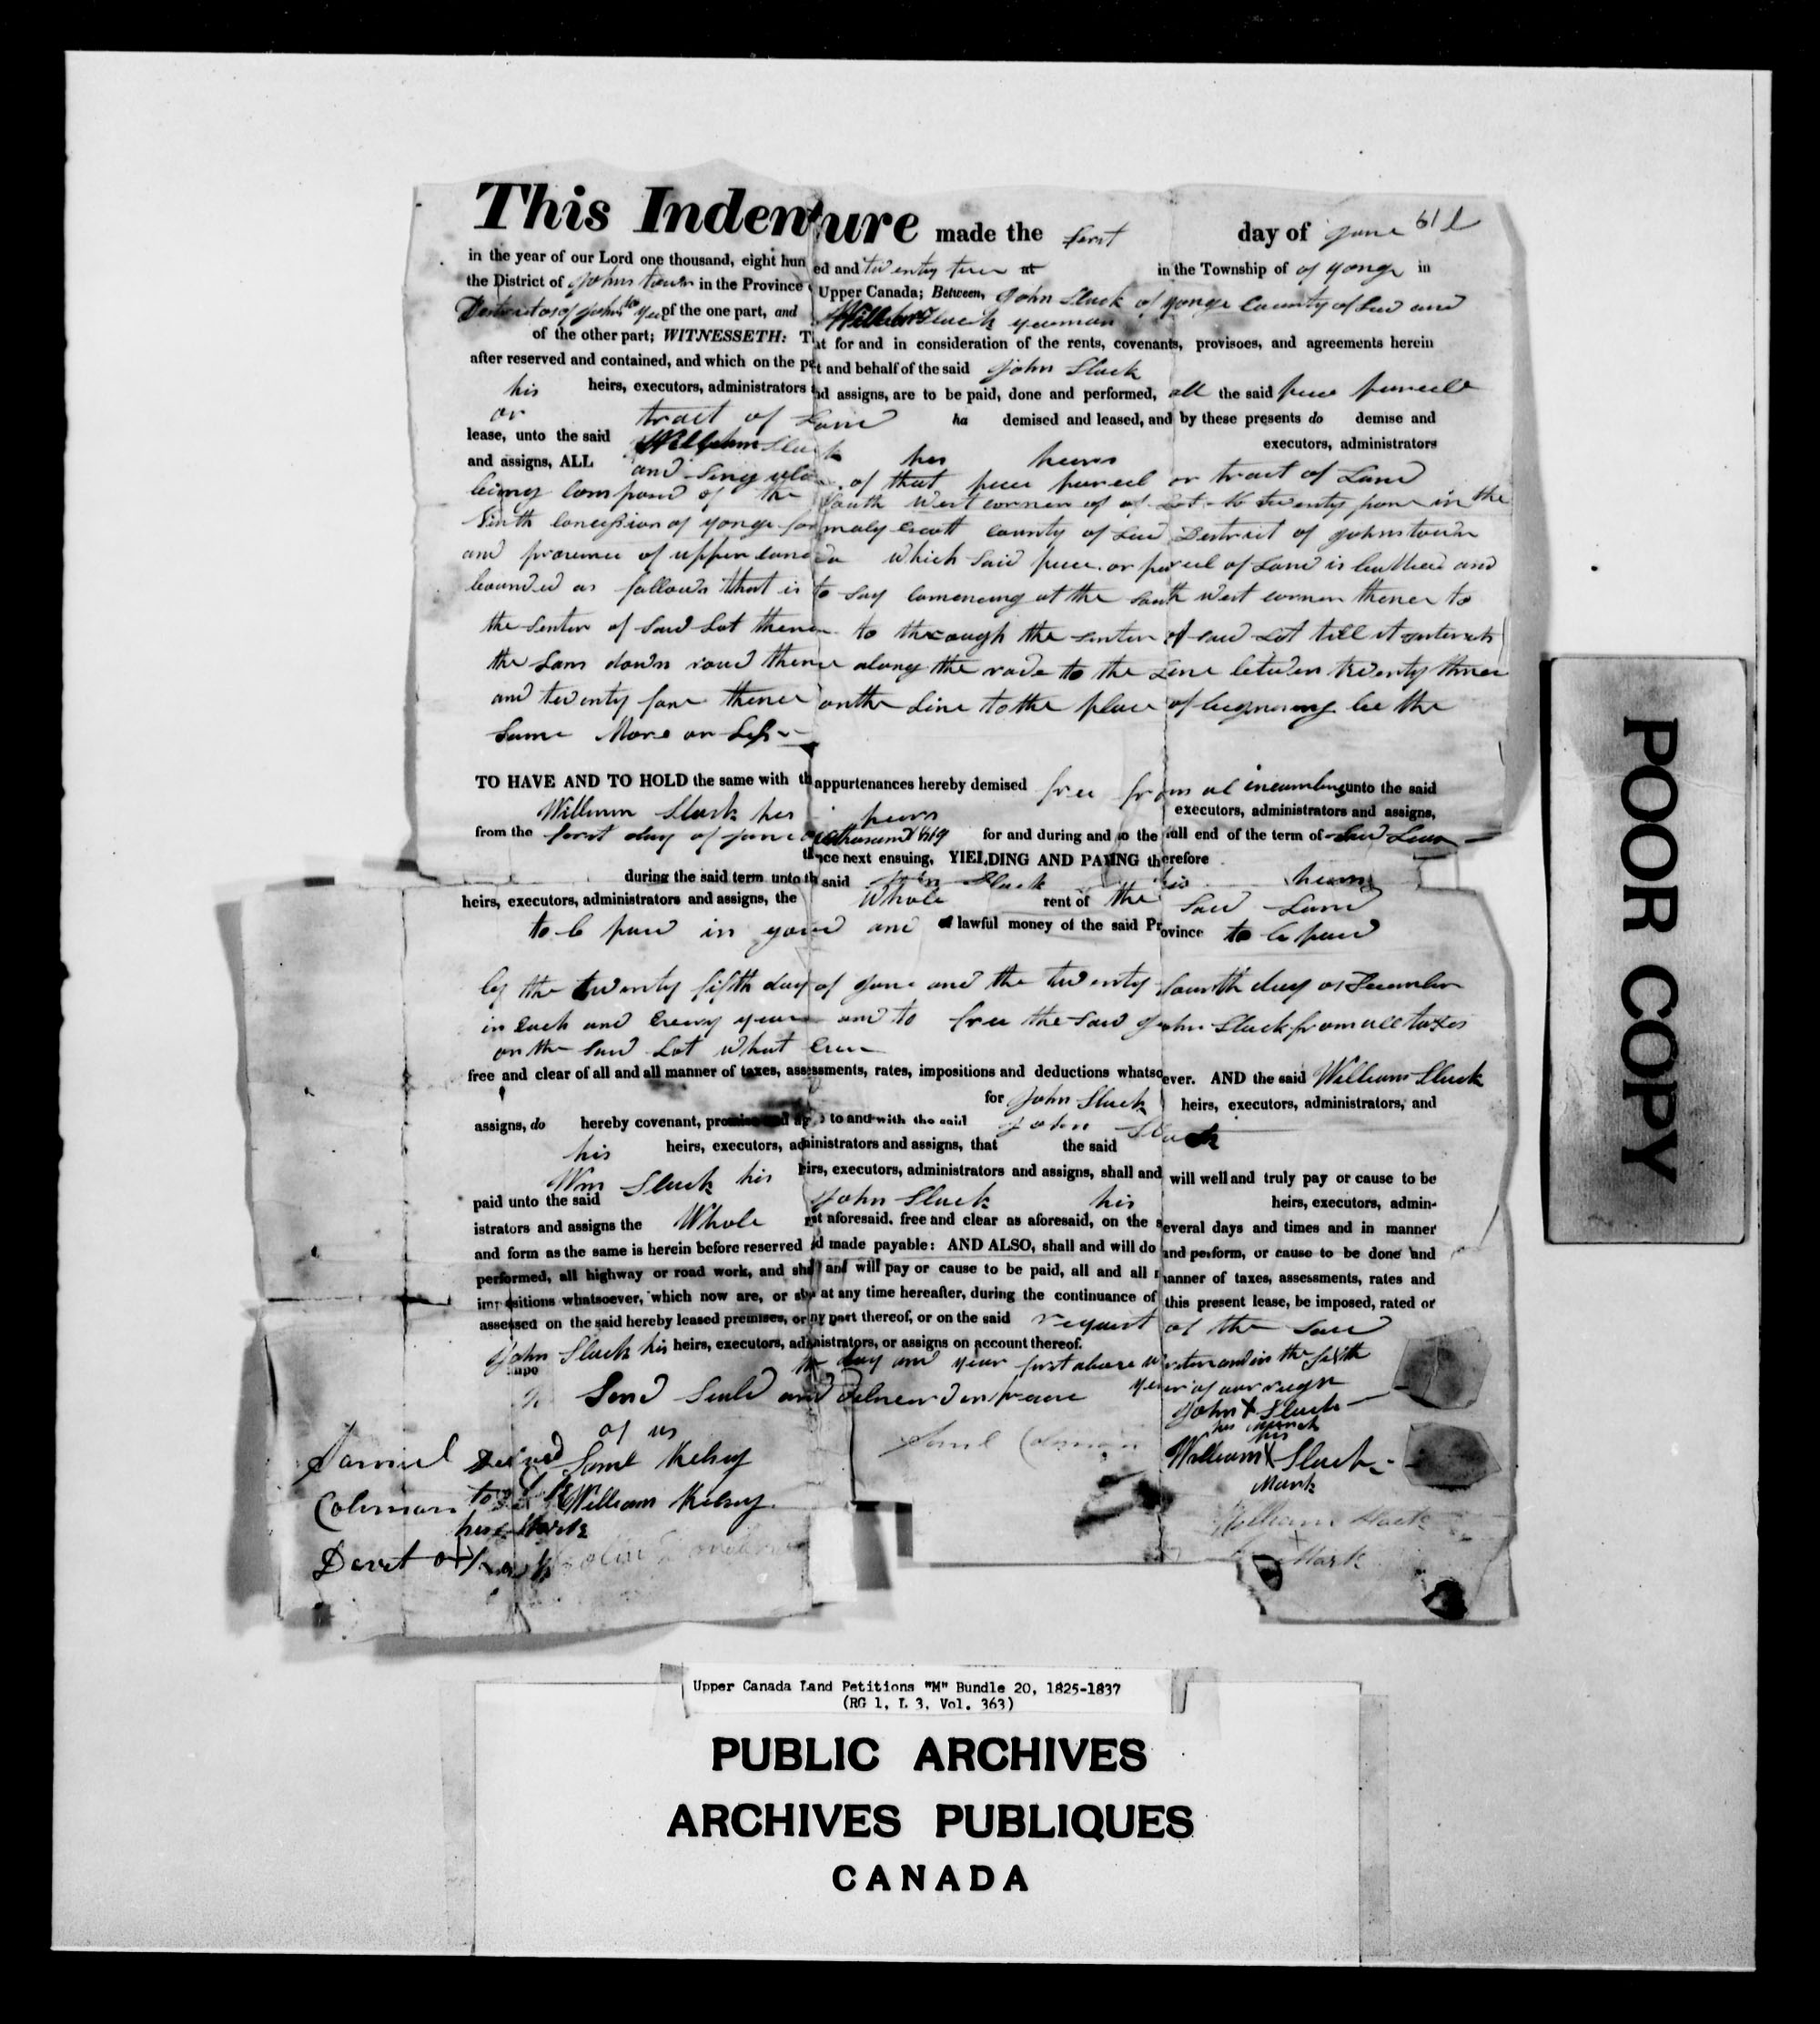 Title: Upper Canada Land Petitions (1763-1865) - Mikan Number: 205131 - Microform: c-2216